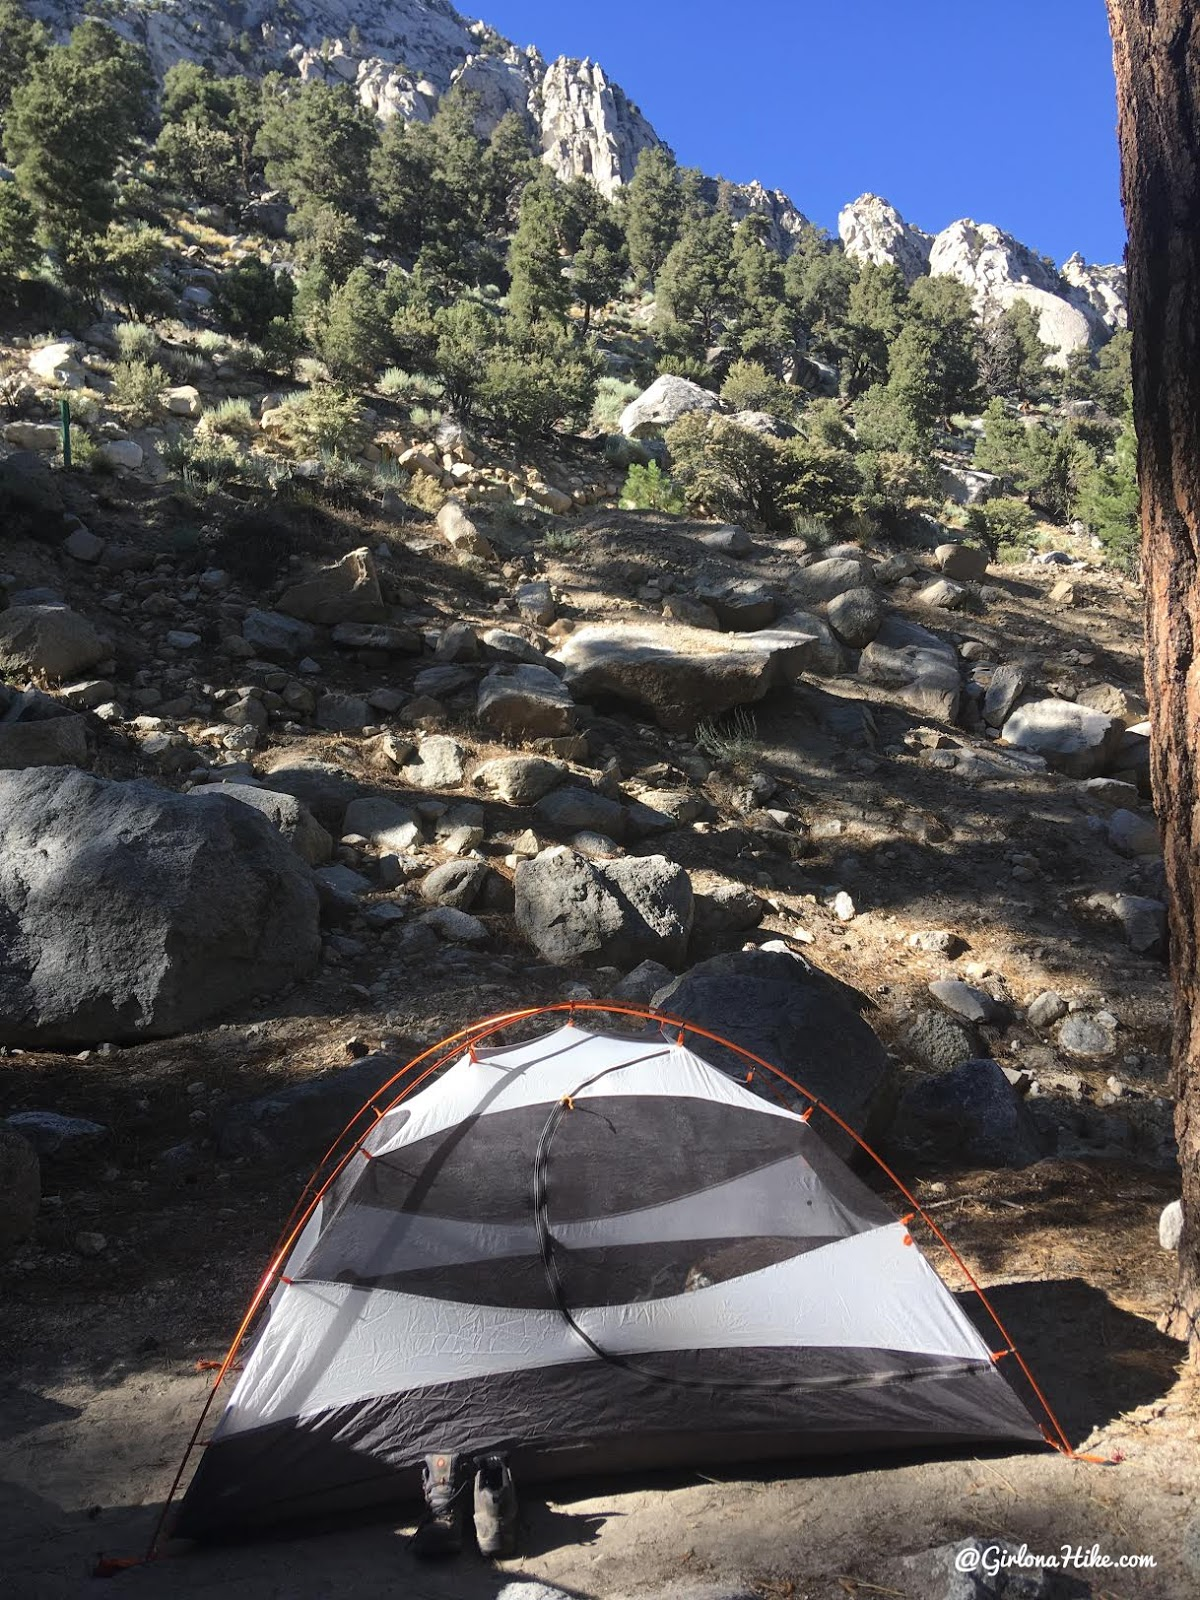 Hiking to Mt.Whitney, Hiking Mt.Whitney in 2020, whitney portal campground